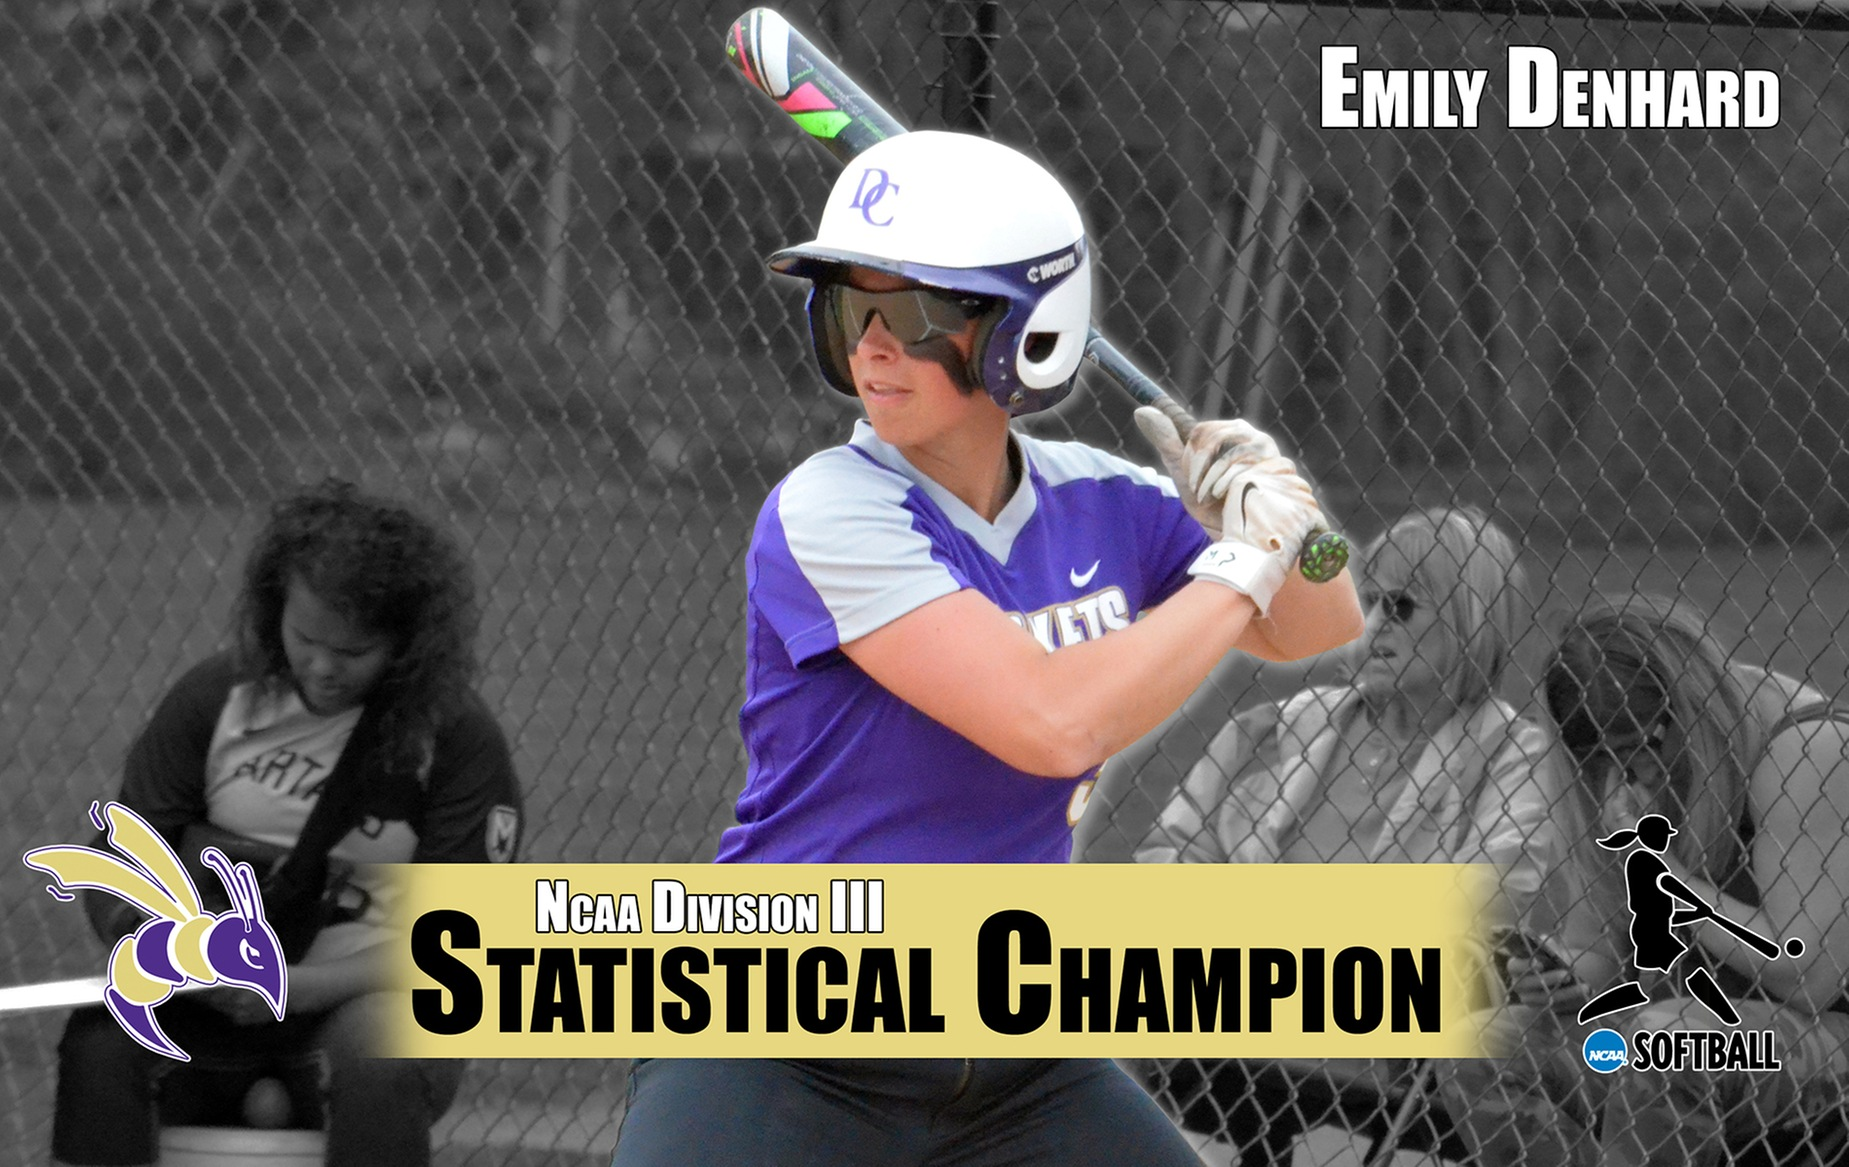 Emily Denhard Named NCAA Statistical Champion